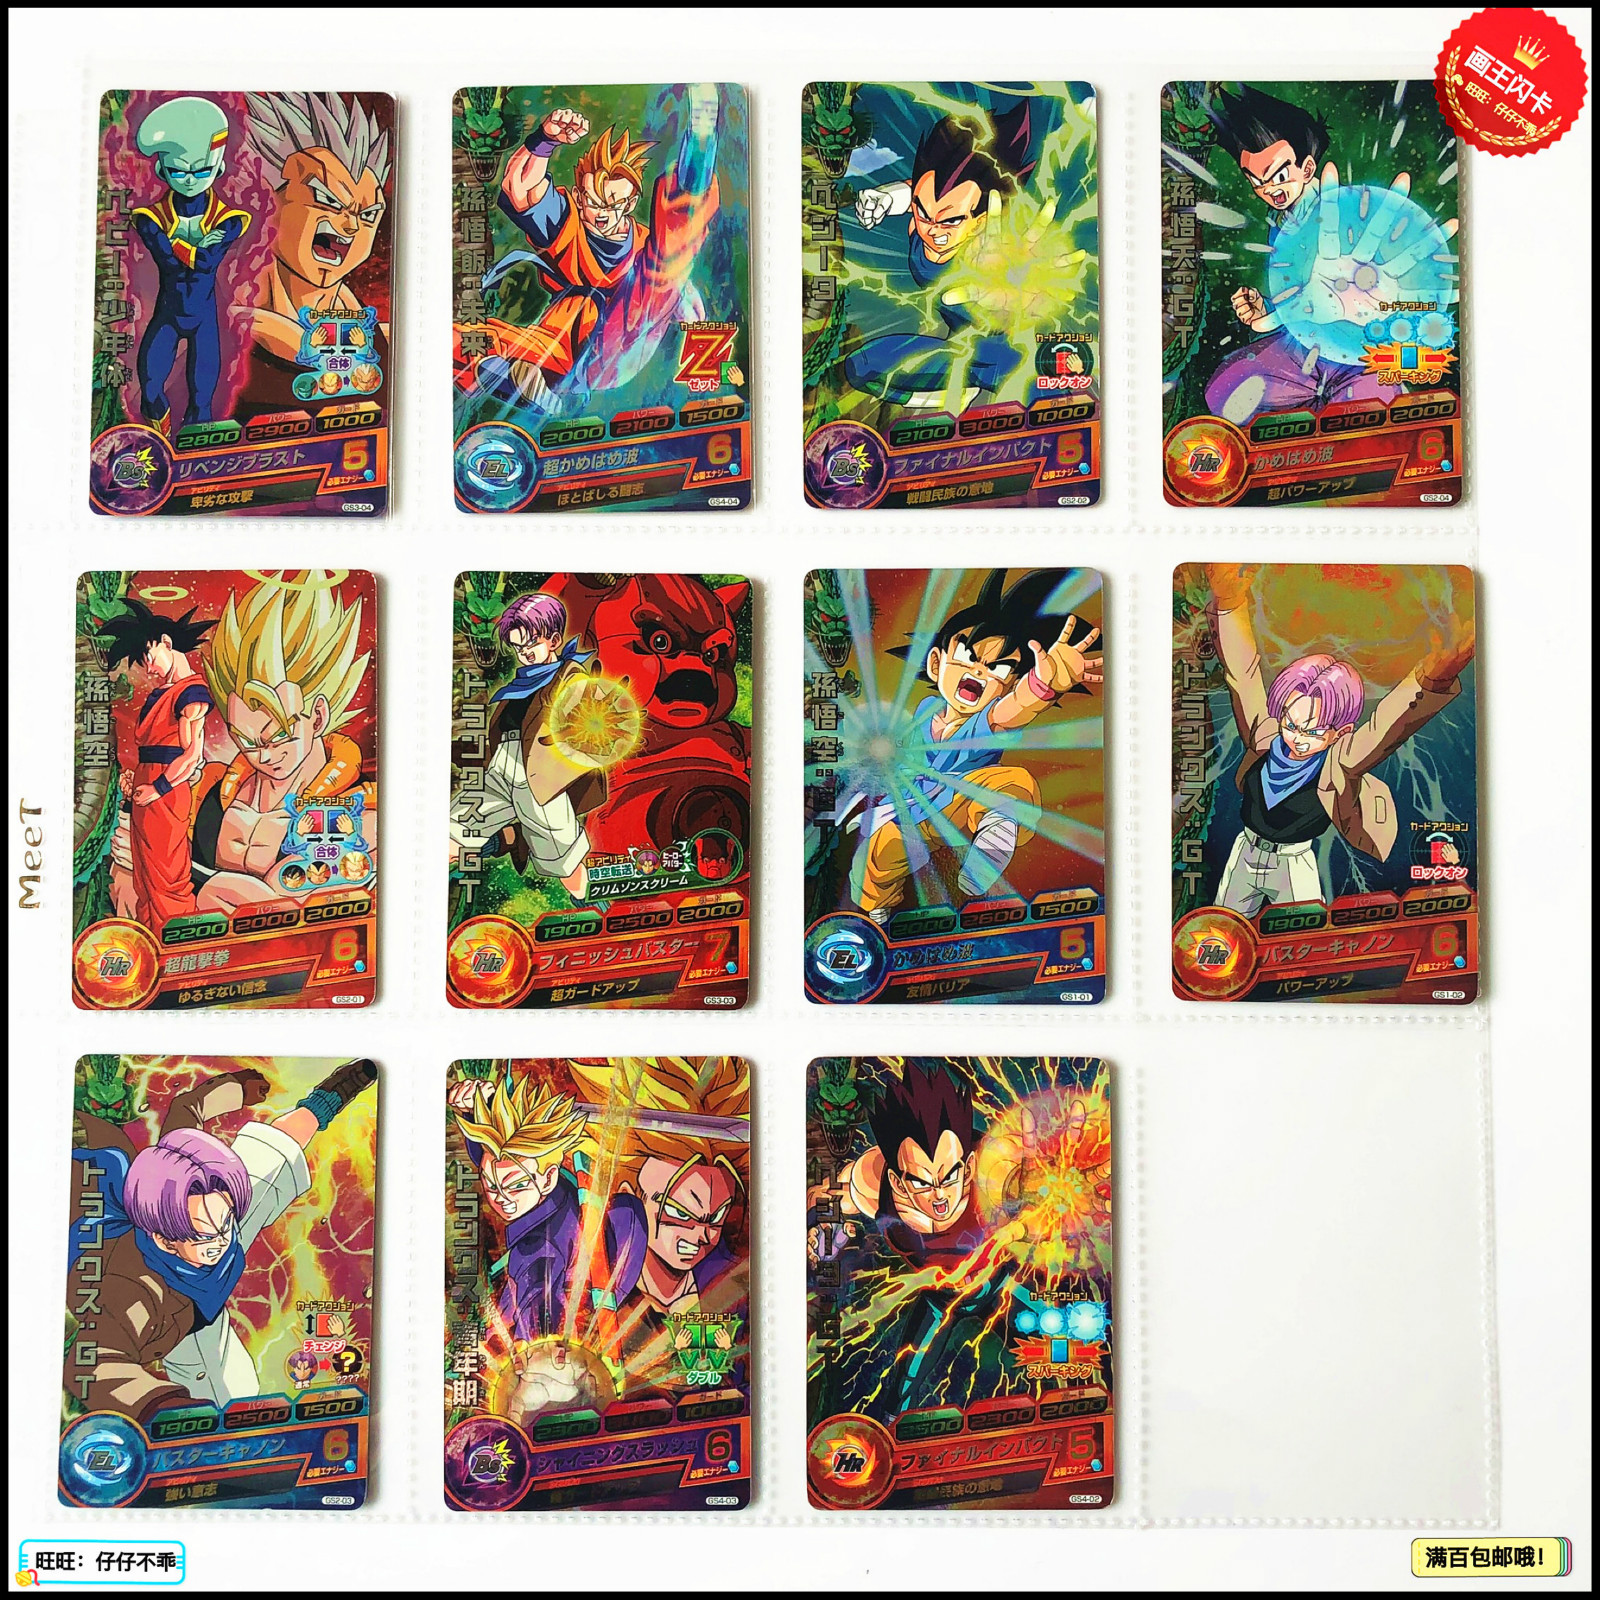 Japan Original Dragon Ball Hero Card GS Goku Toys Hobbies Collectibles Game Collection Anime Cards